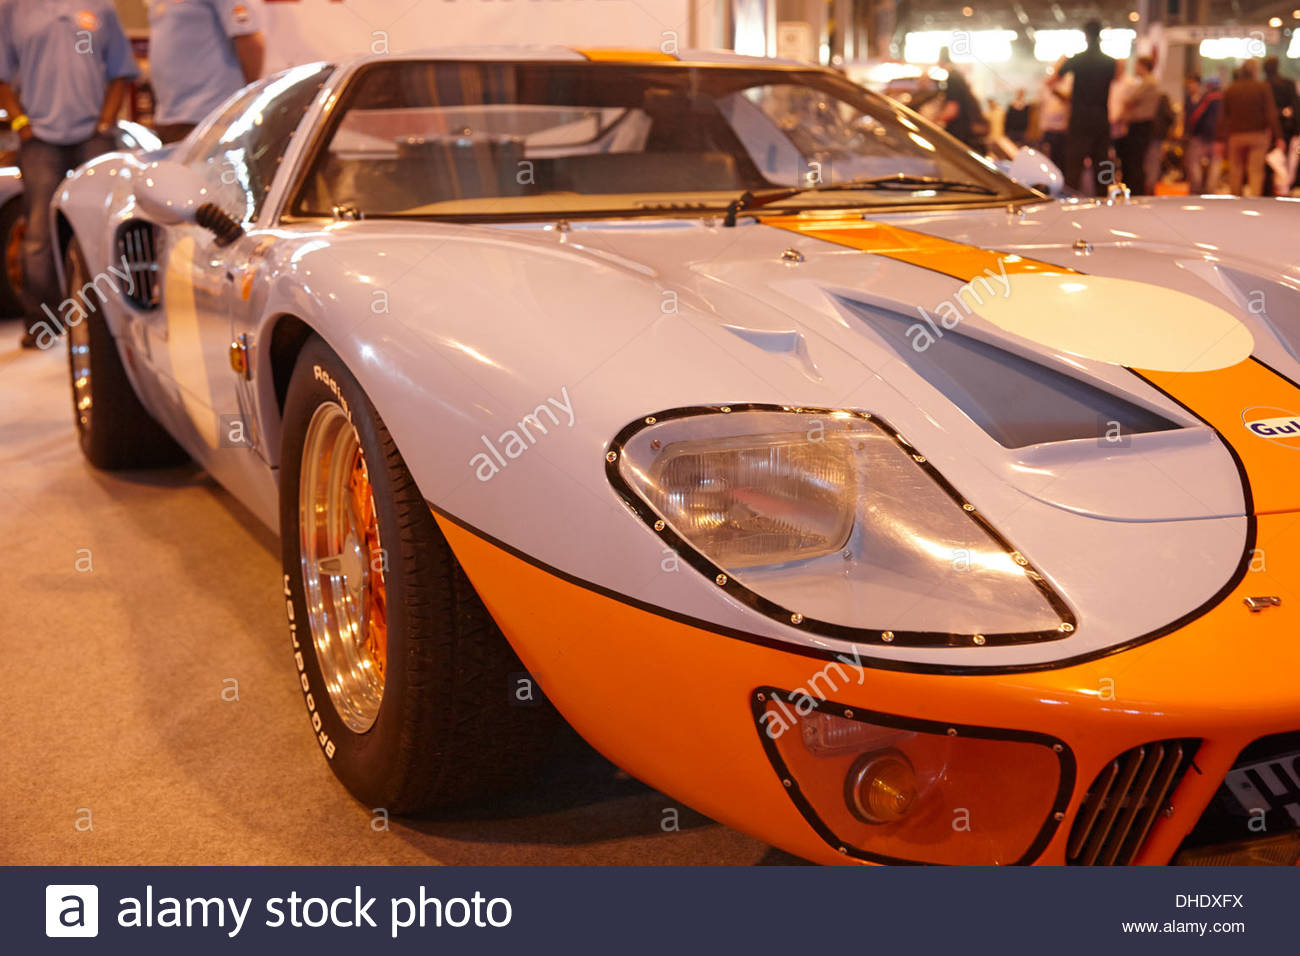 Ford Gt Racing Car Gulf Oil Colours Of Light Blue And Orange